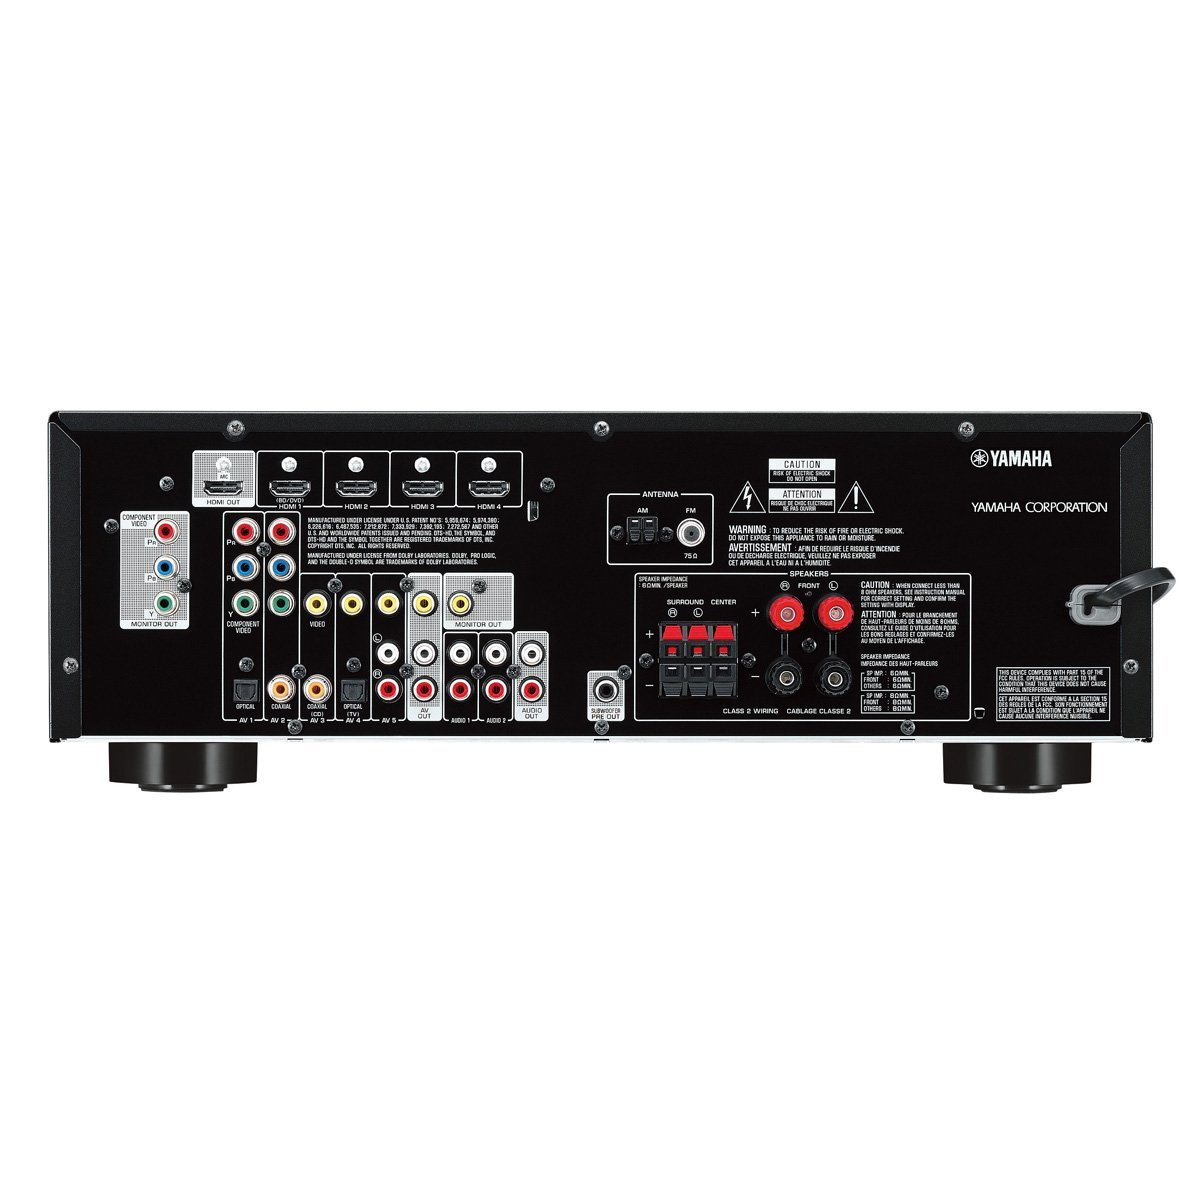 Buy Yamaha Htr 3066 5 1 Channel Av Receiver With Auto